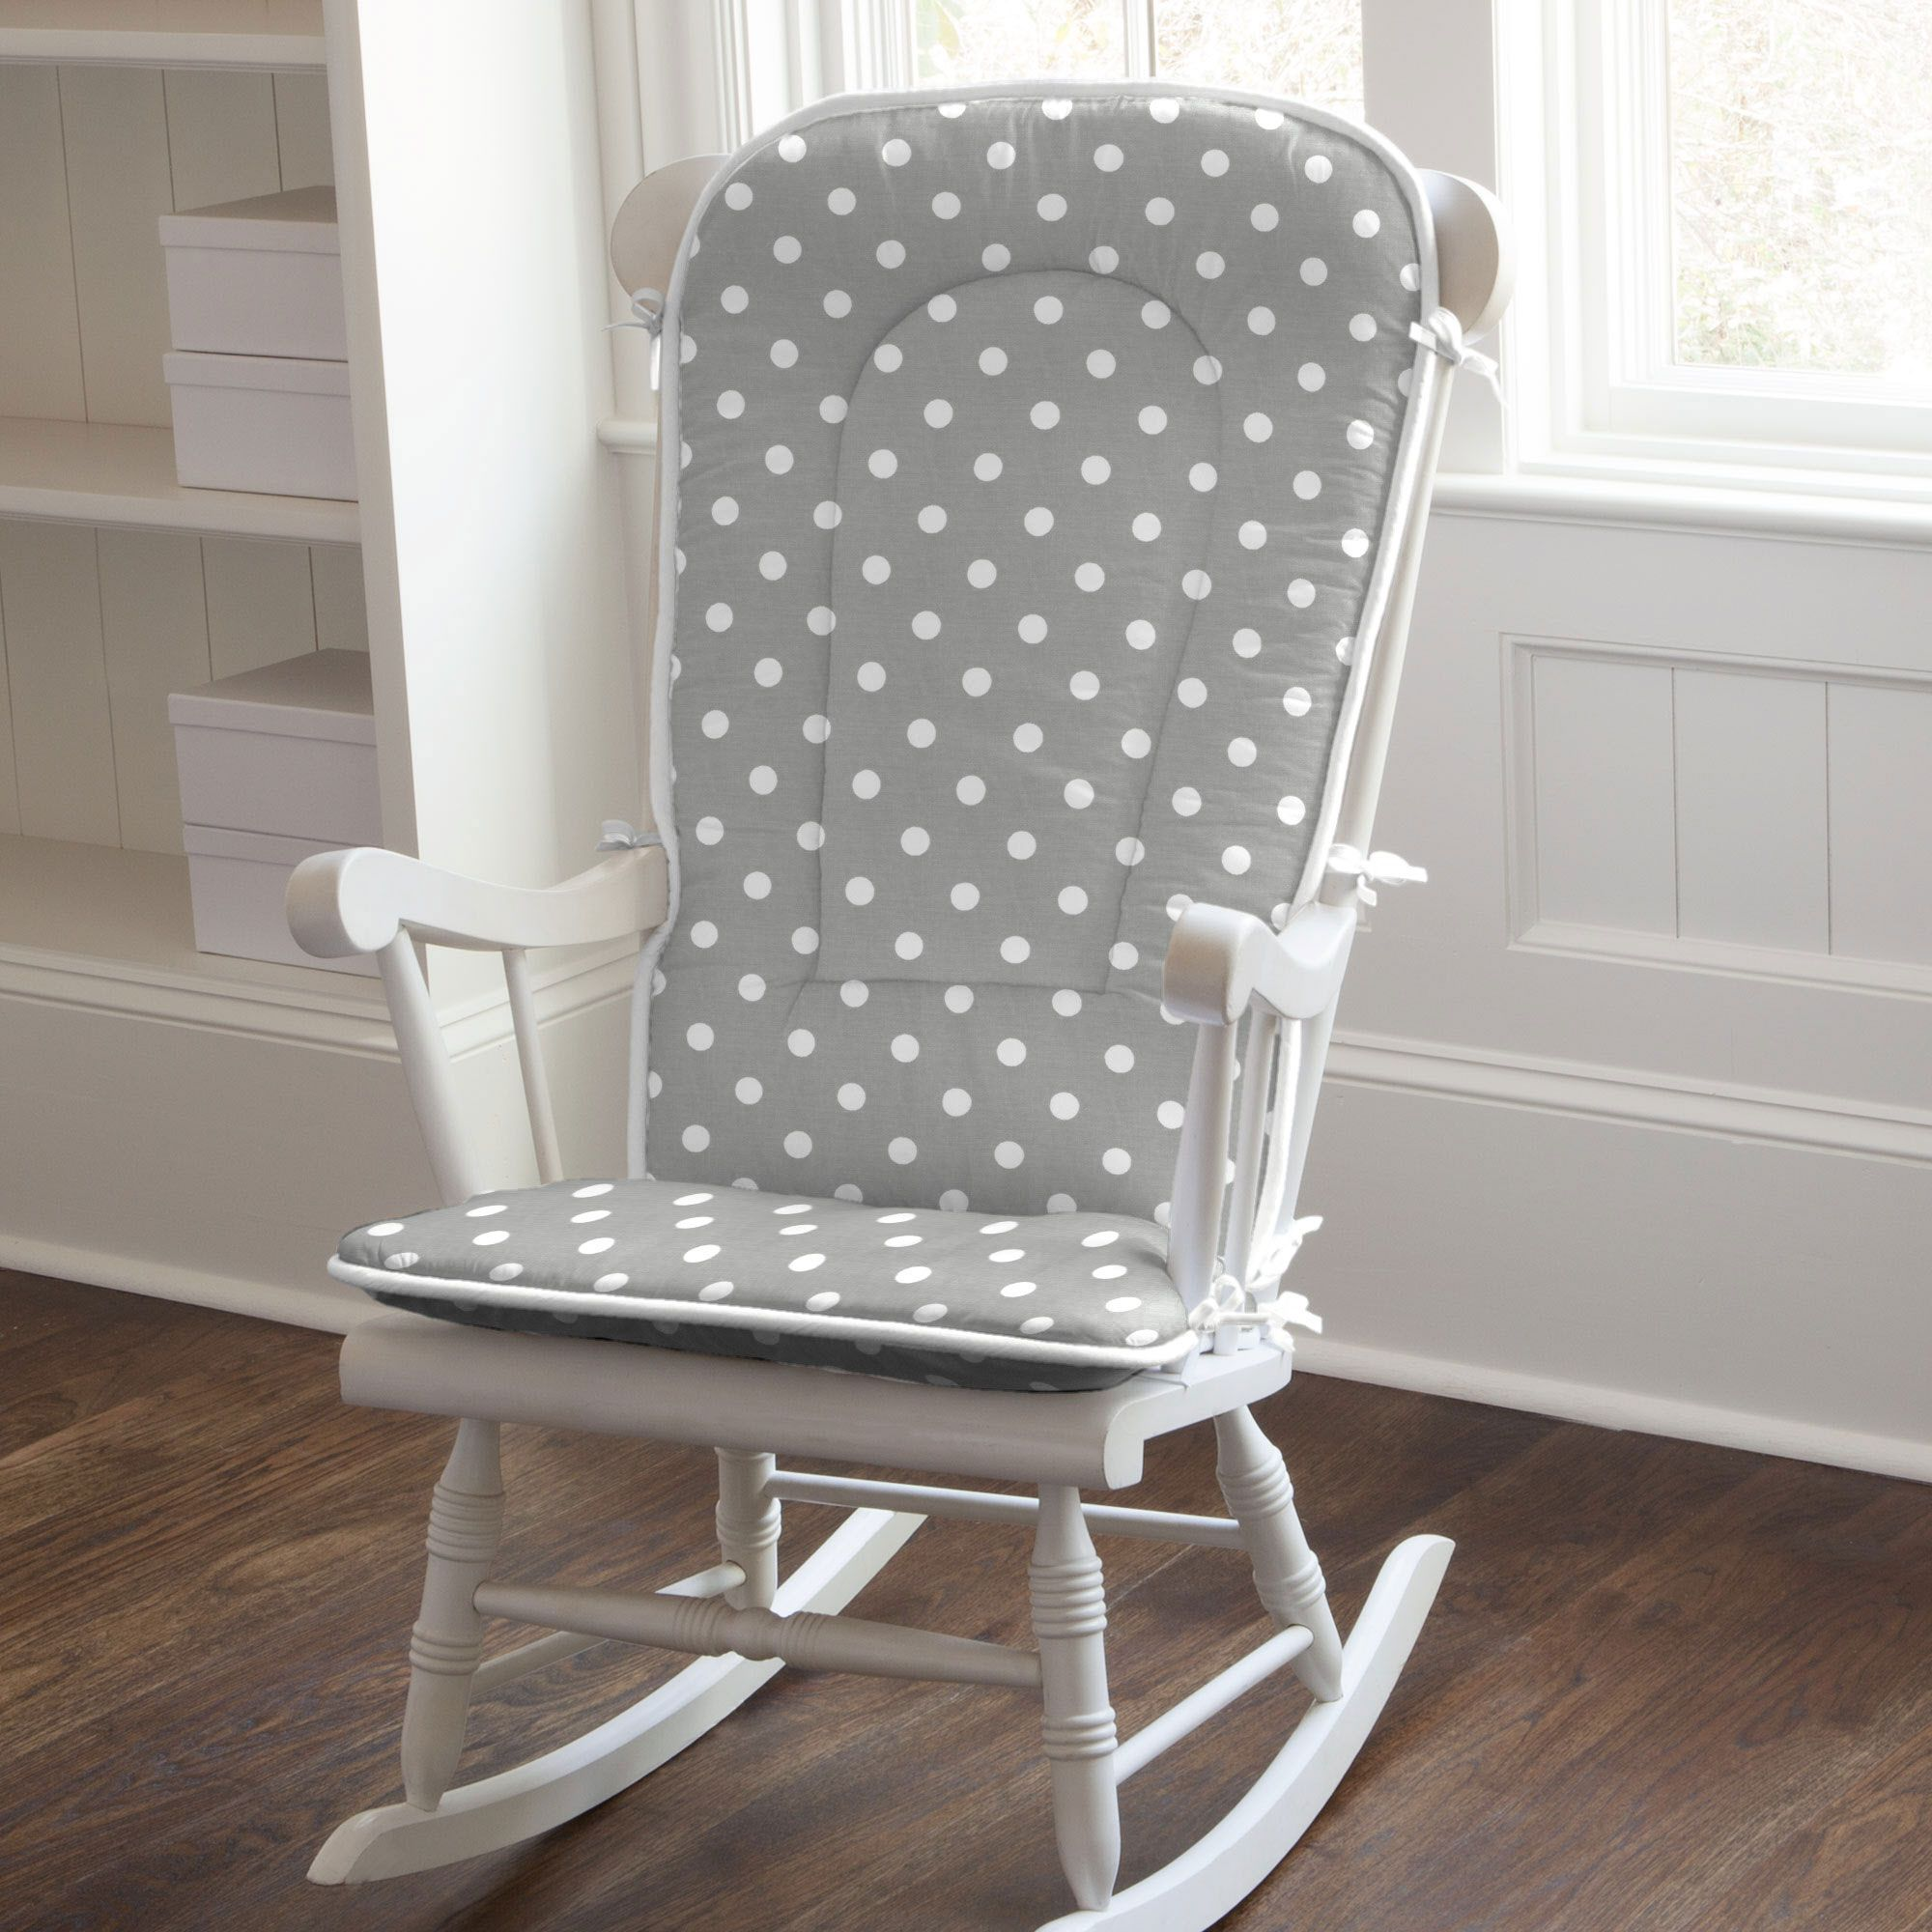 Gray and White Dots and Stripes Rocking Chair Pad